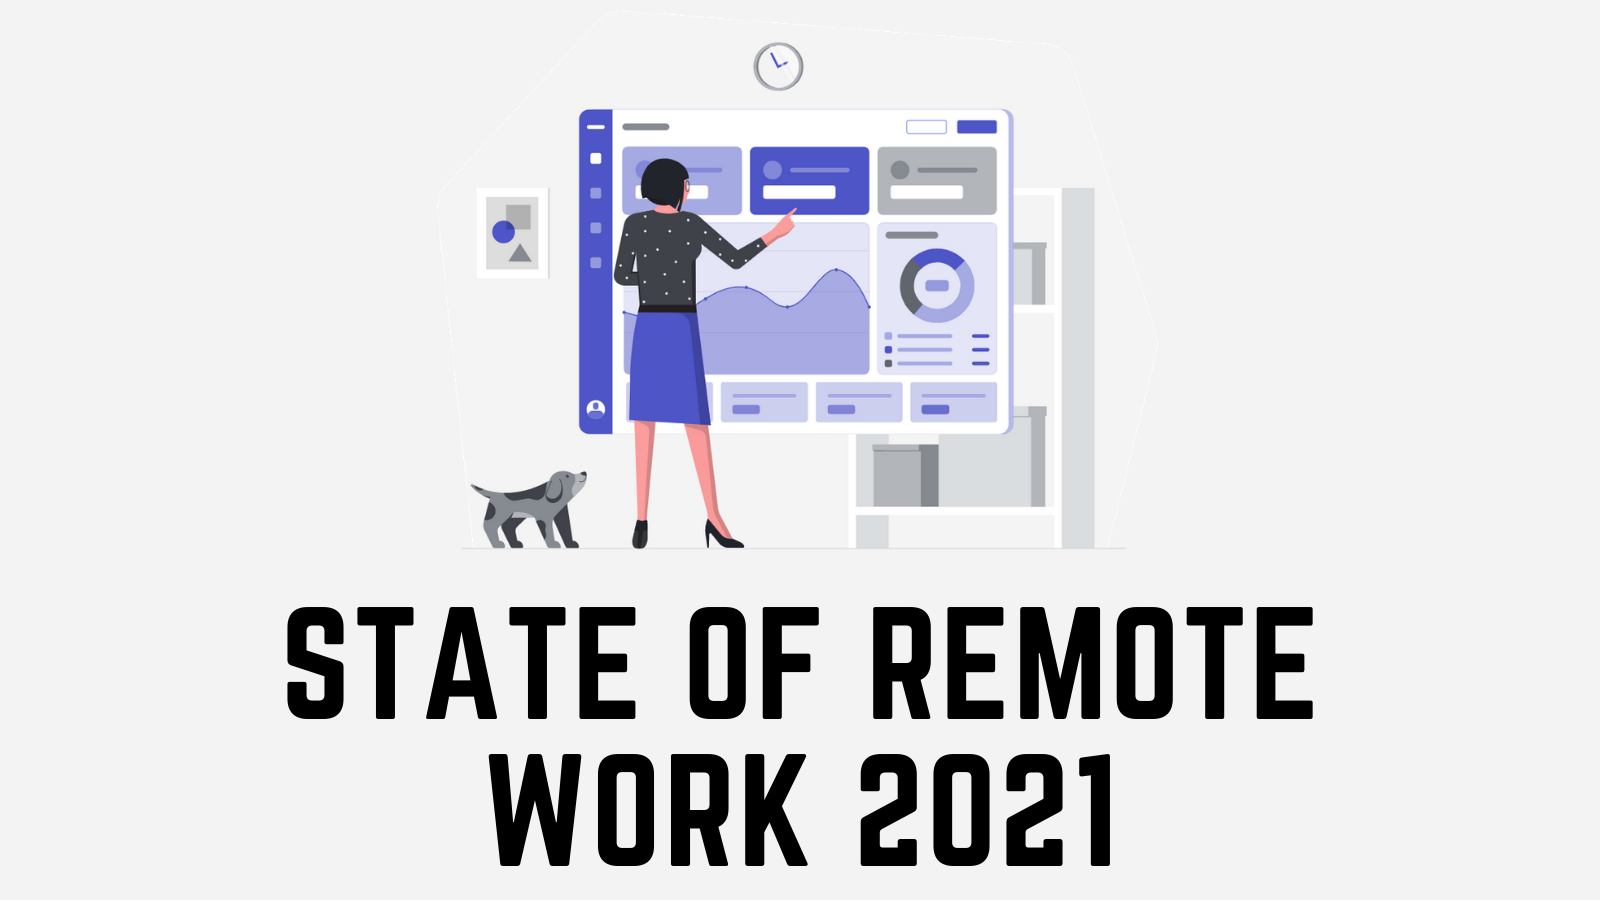 2020 - Year of remote work in review and future of remote work